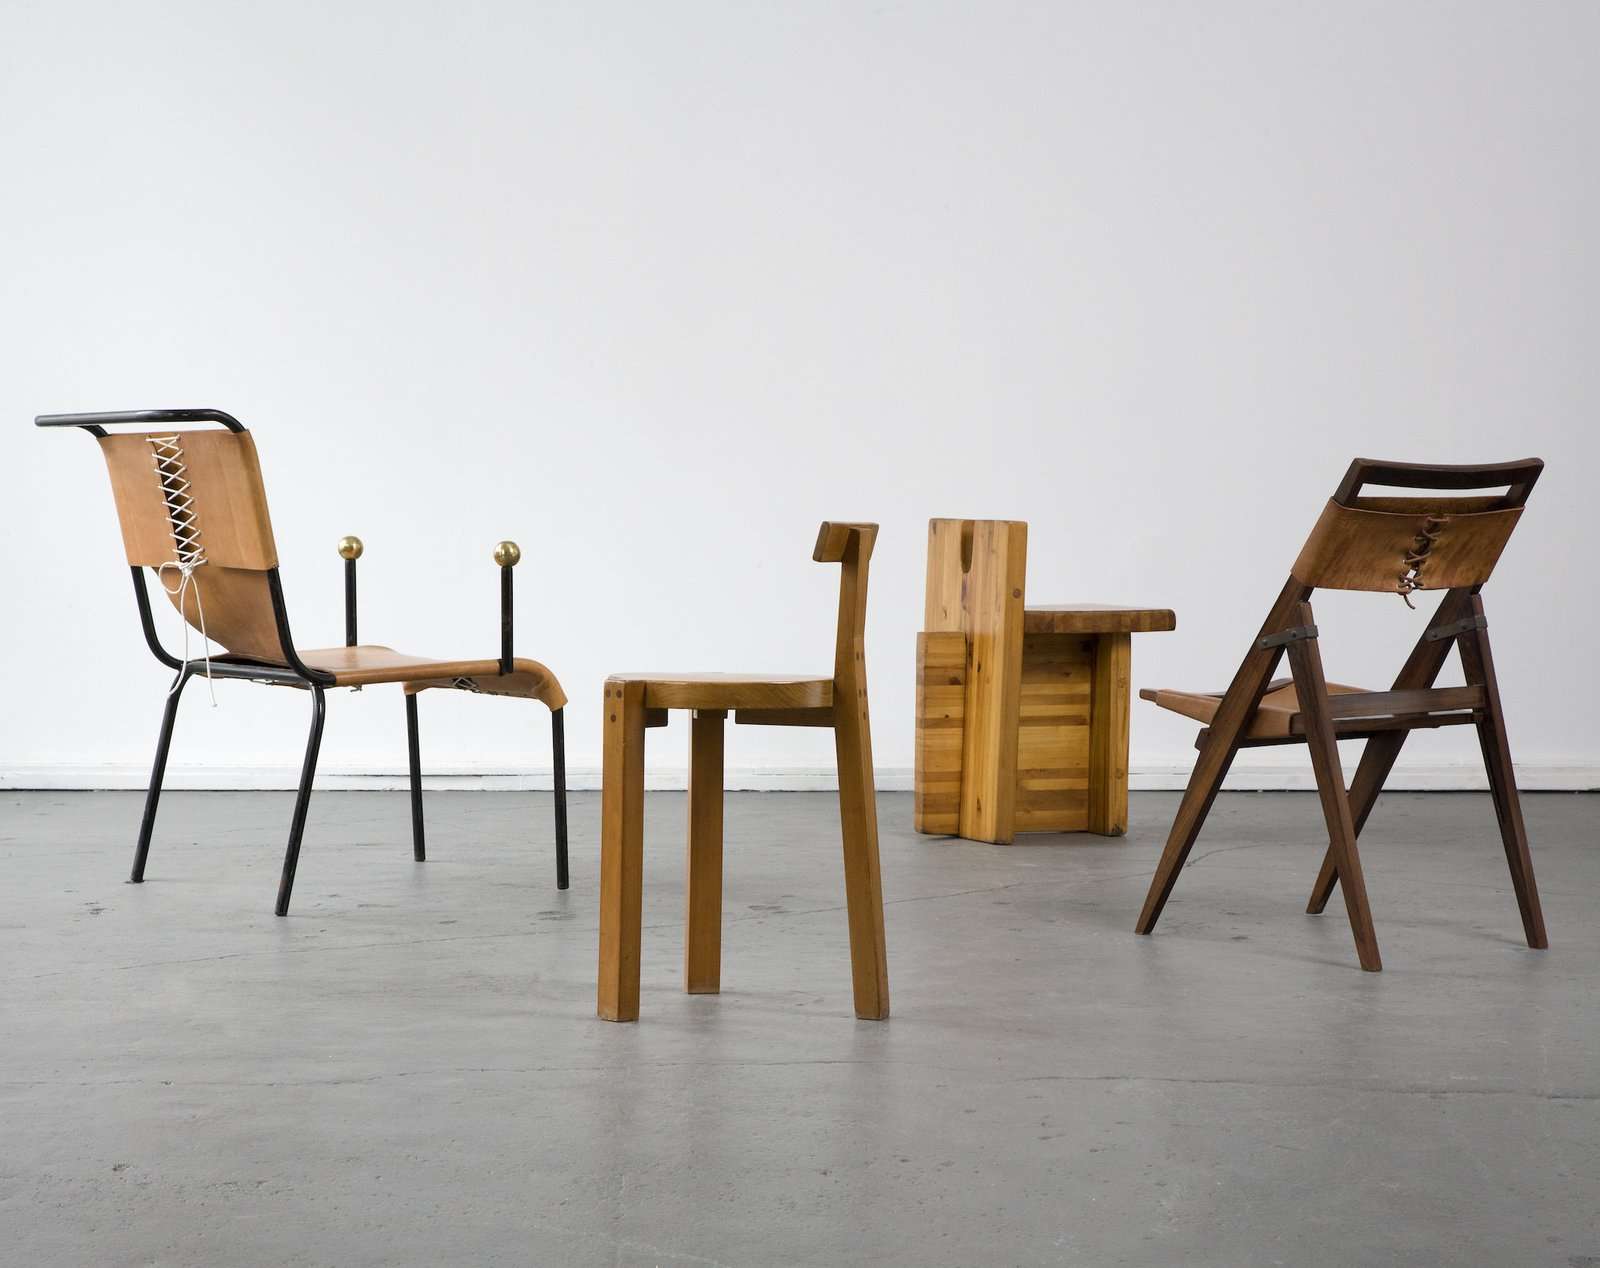 Architect Lina Bo Bardi embraced the vernacular design traditions while pushing new forms forward. Her use of not only wood but fabrics and leathers stand out in several of her designs. Her furniture was often designed only for her buildings. This group of chairs was created between the 1950s and the 1980s.  100+ Best Modern Seating Designs from Bring the Best of Brazilian Modernism to Your Home with This New Book